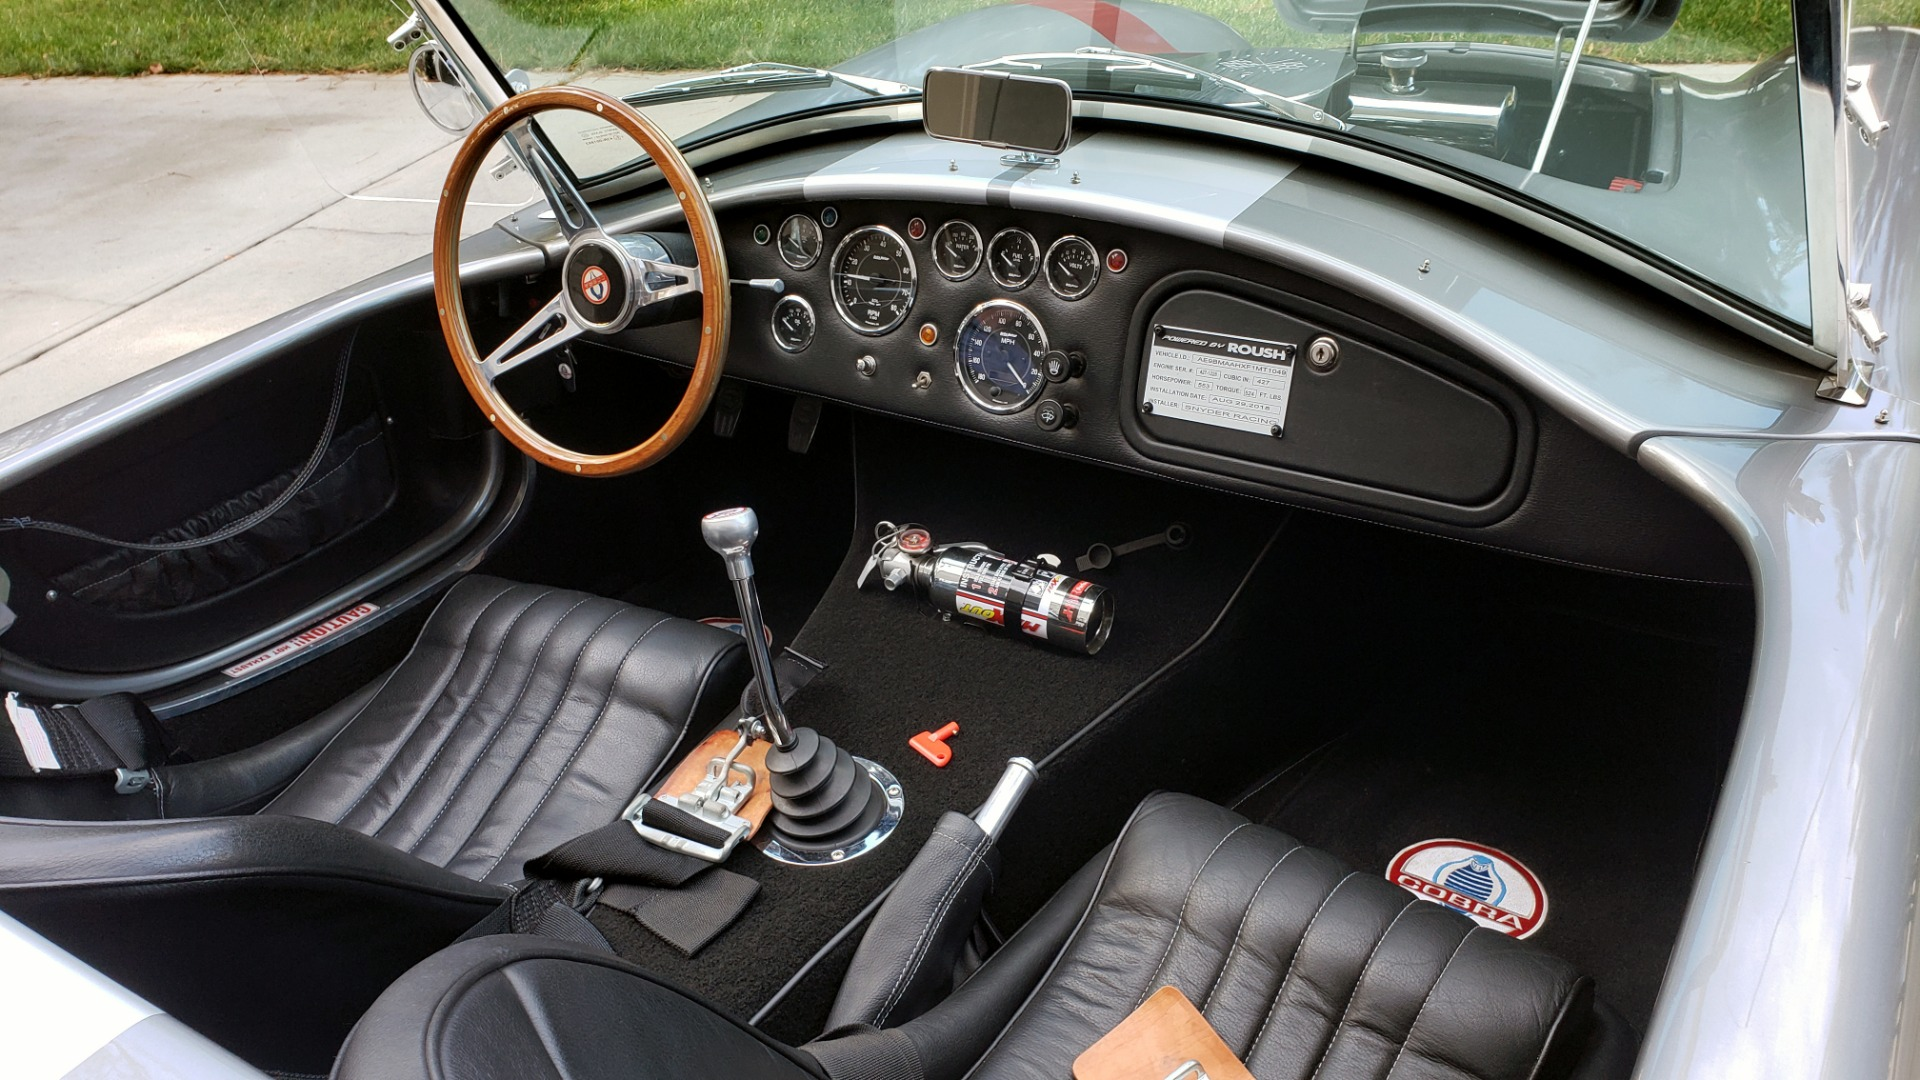 Used 1965 Ford COBRA 427 ROADSTER BY BRACKDRAFT RACING ROUSH 553HP V8 / TREMEC 6-SPD / PWR STRNG for sale $74,999 at Formula Imports in Charlotte NC 28227 61